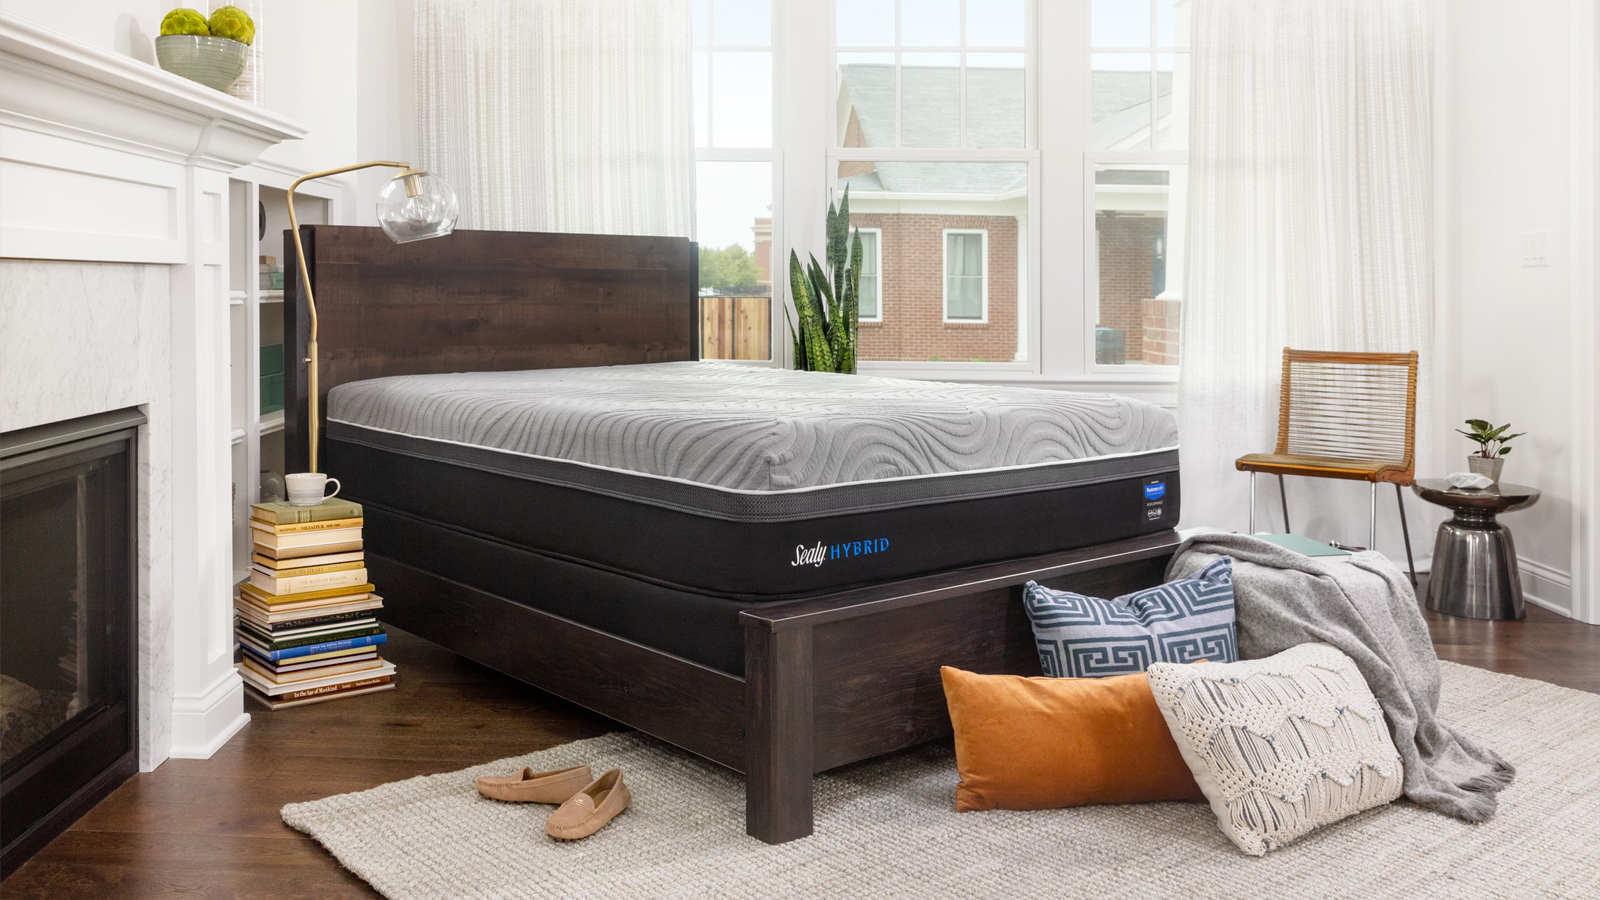 Sealy mattress setup within a bedroom